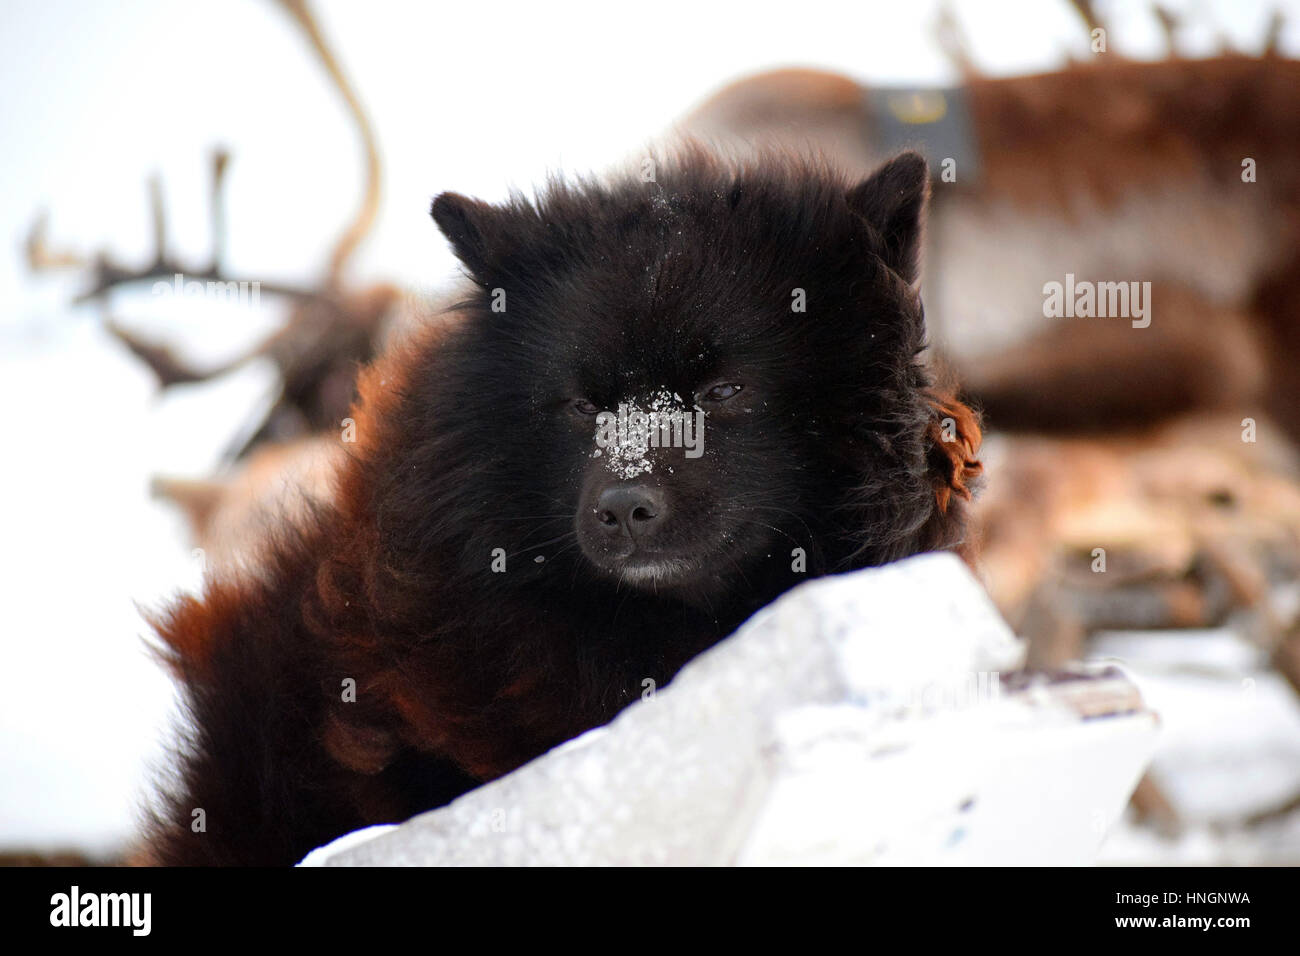 Laika dog at north siberia. - Stock Image